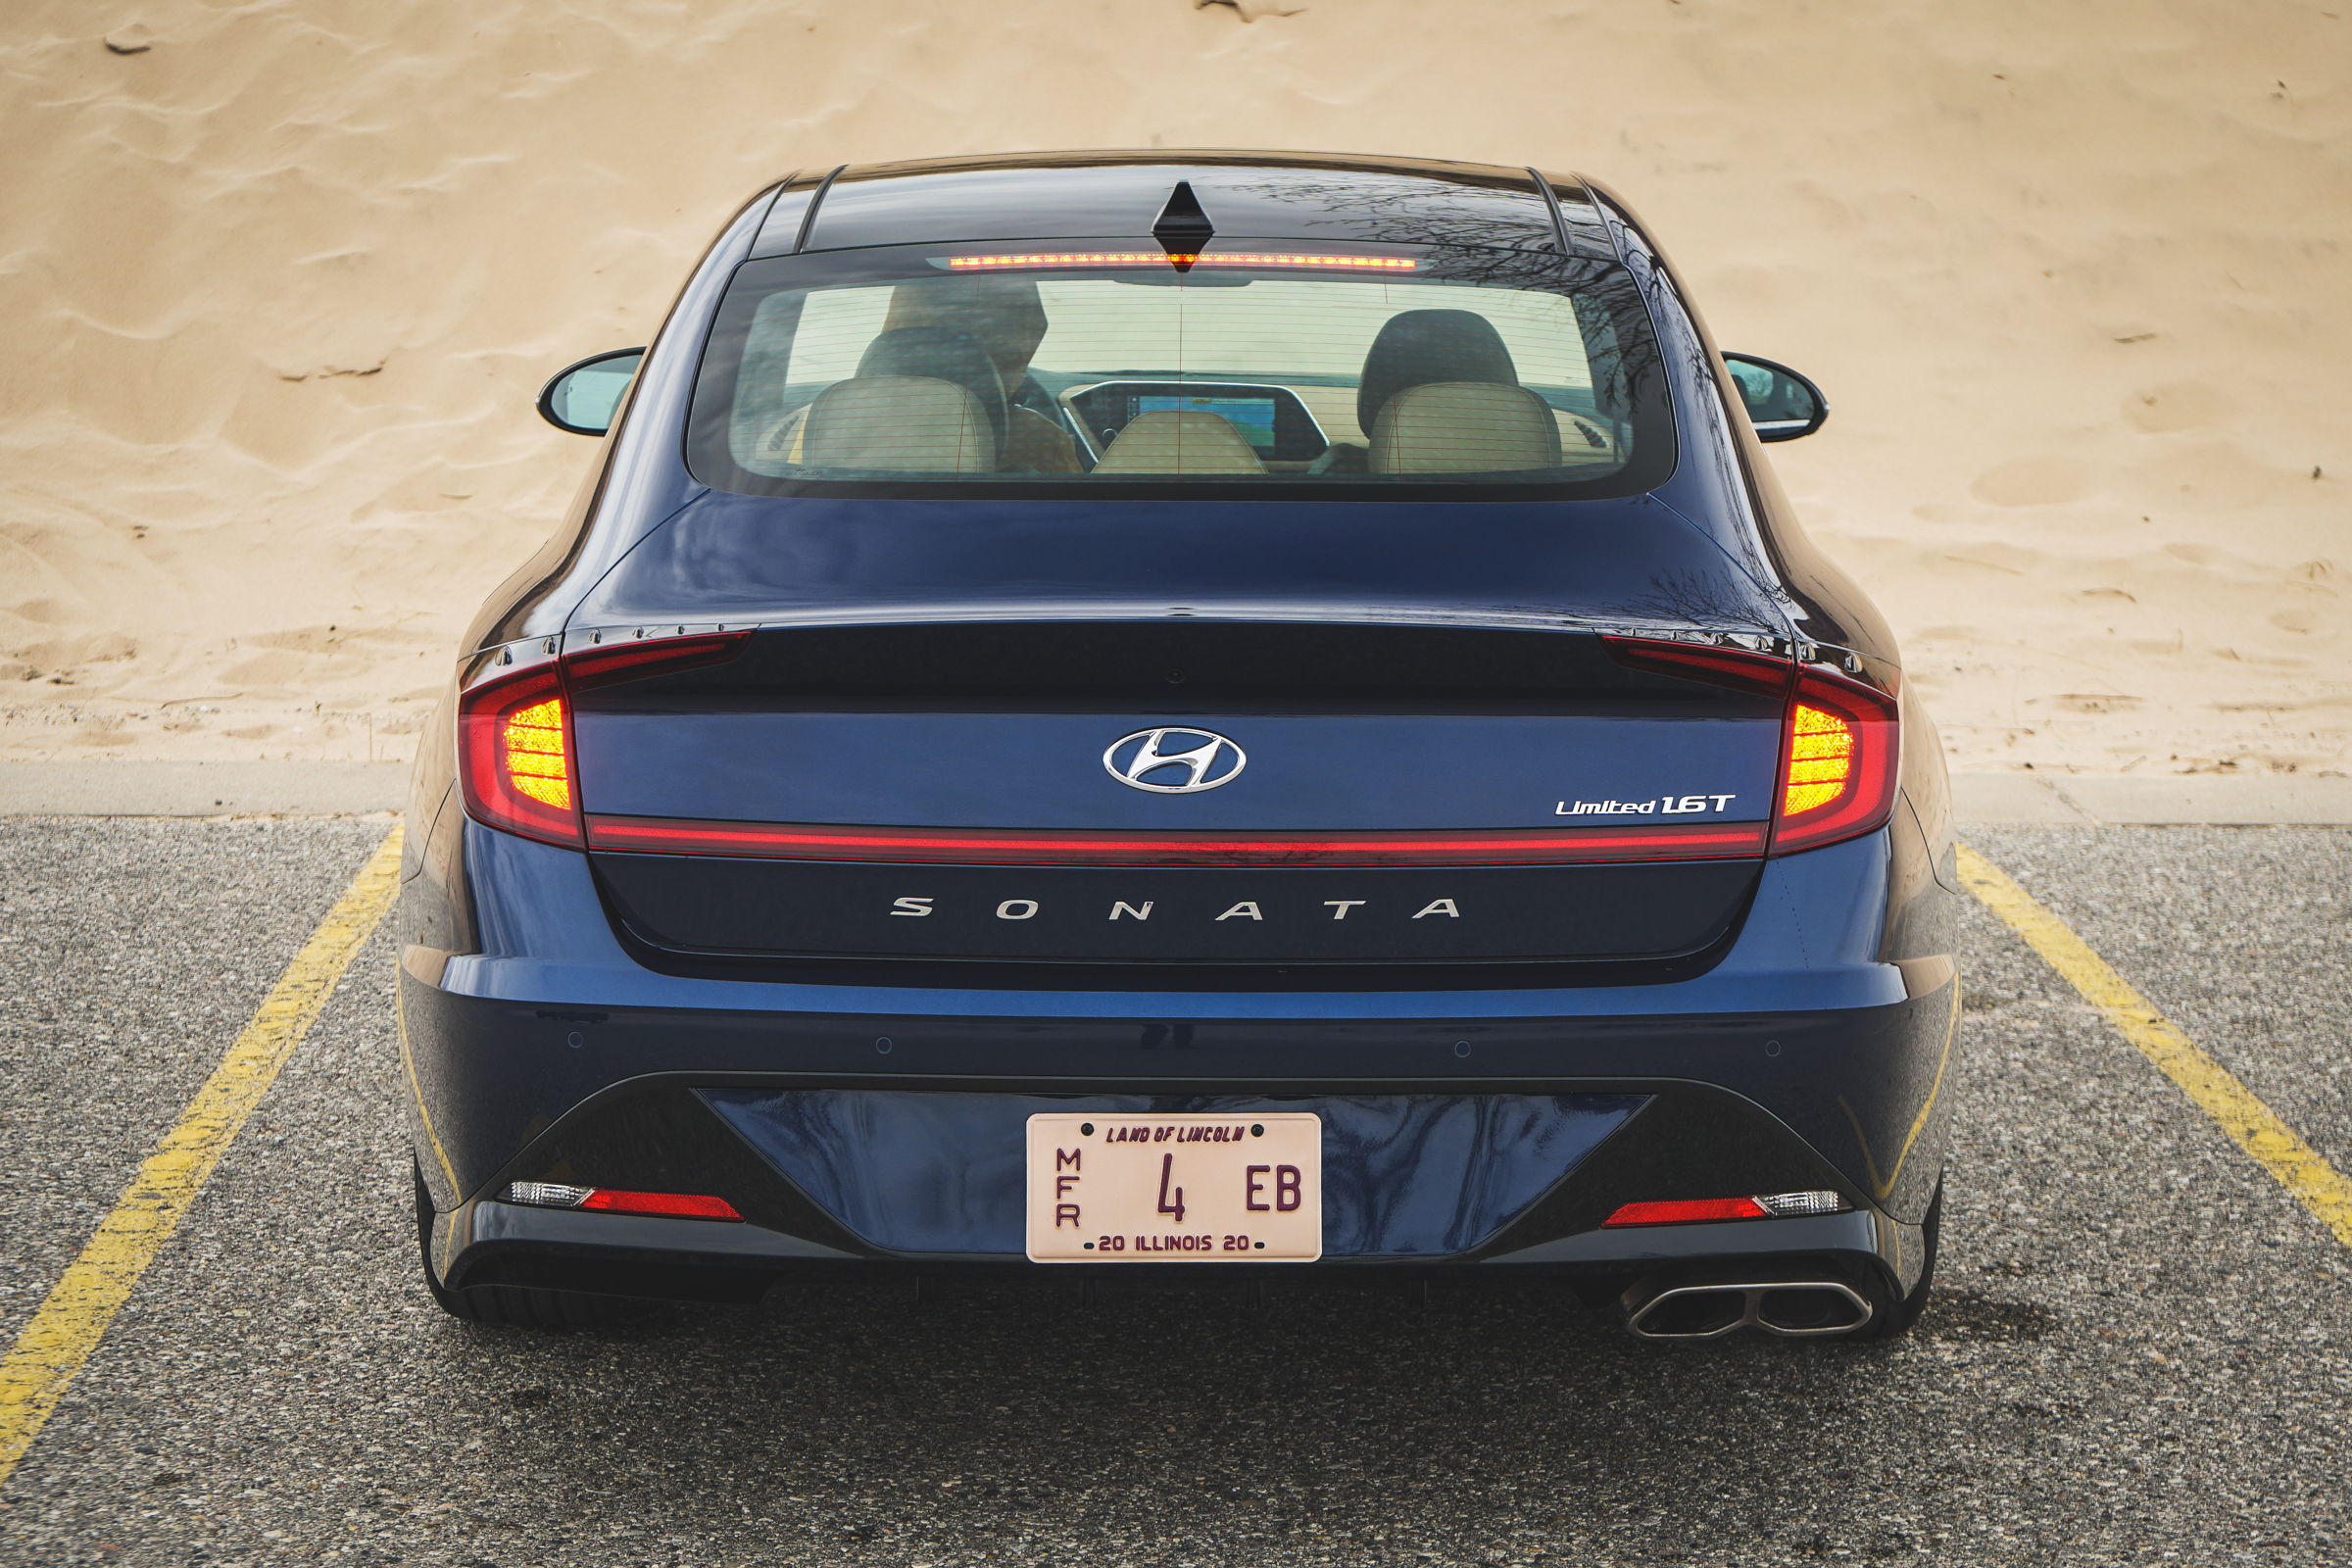 2020 Hyundai Sonata Limited rear elevated brake lights